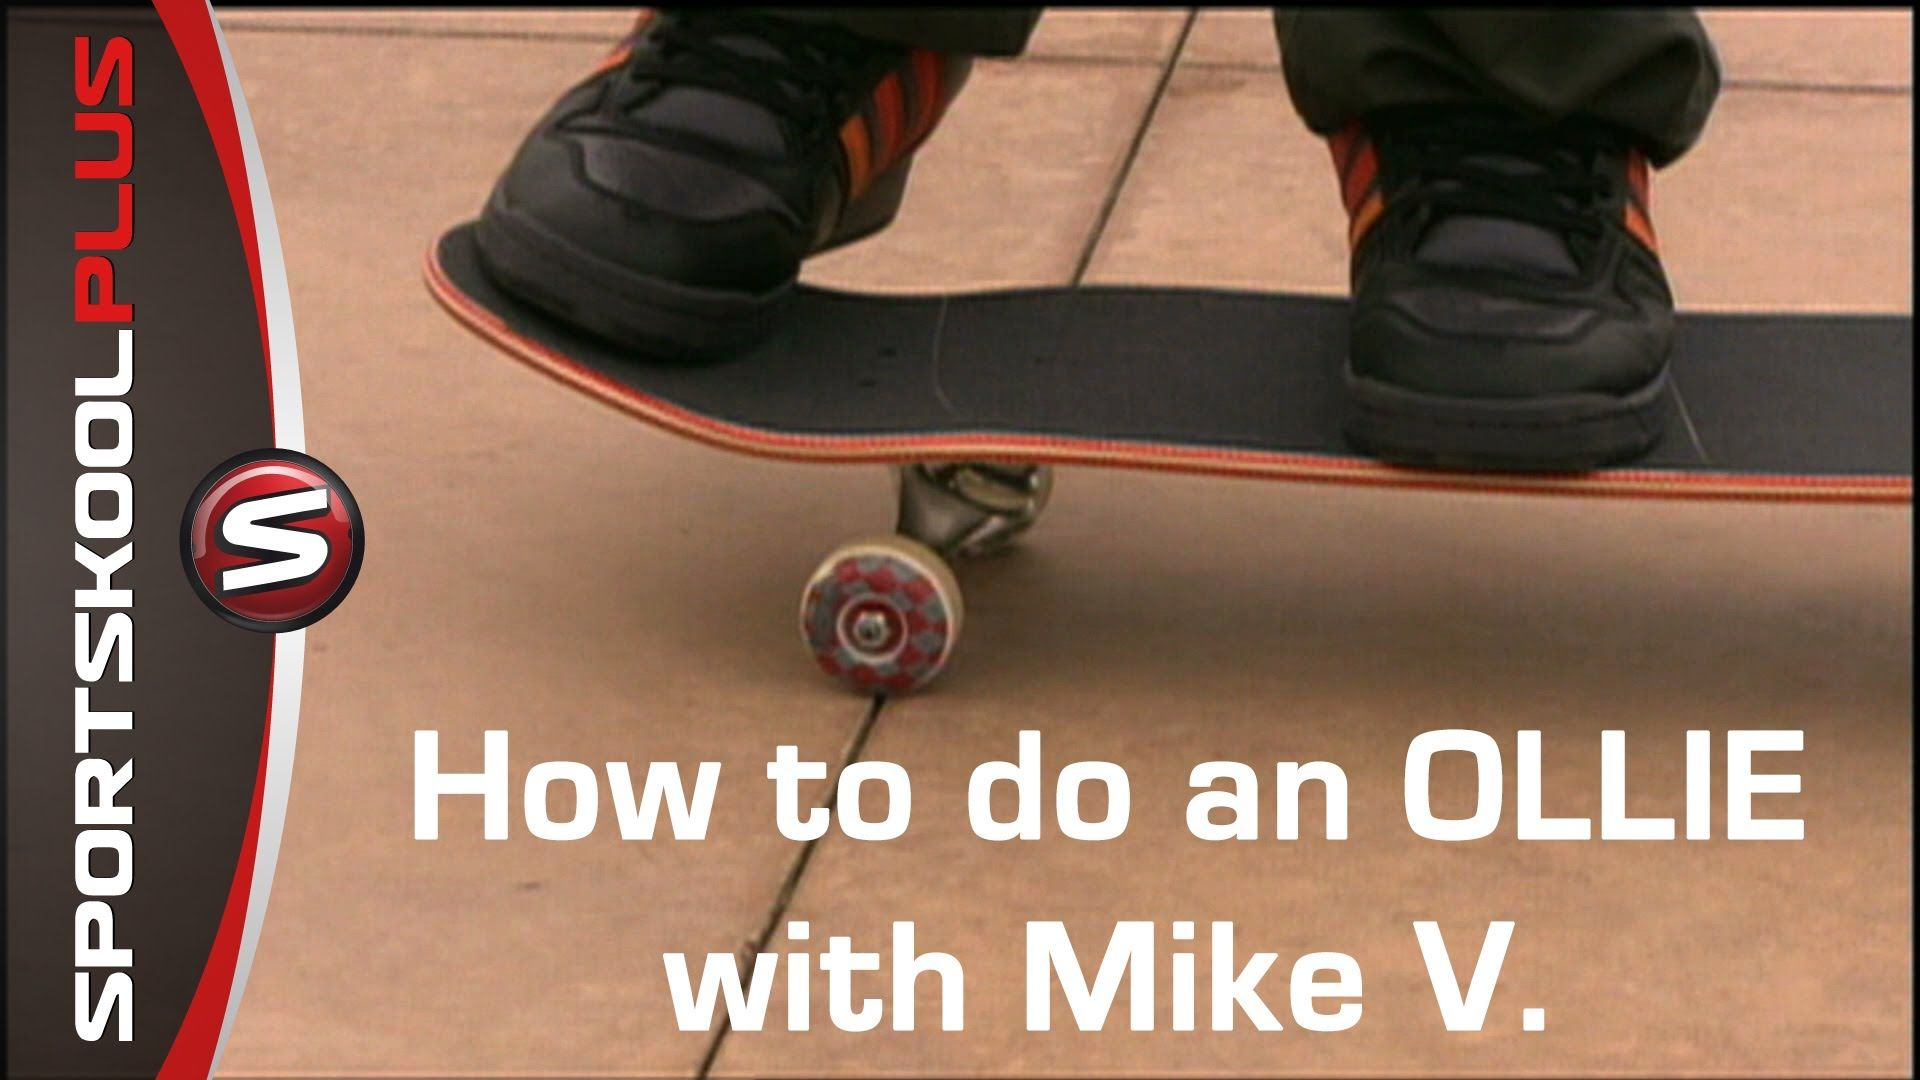 How to do an Ollie with Pro Skateboarder Mike V. Ollie